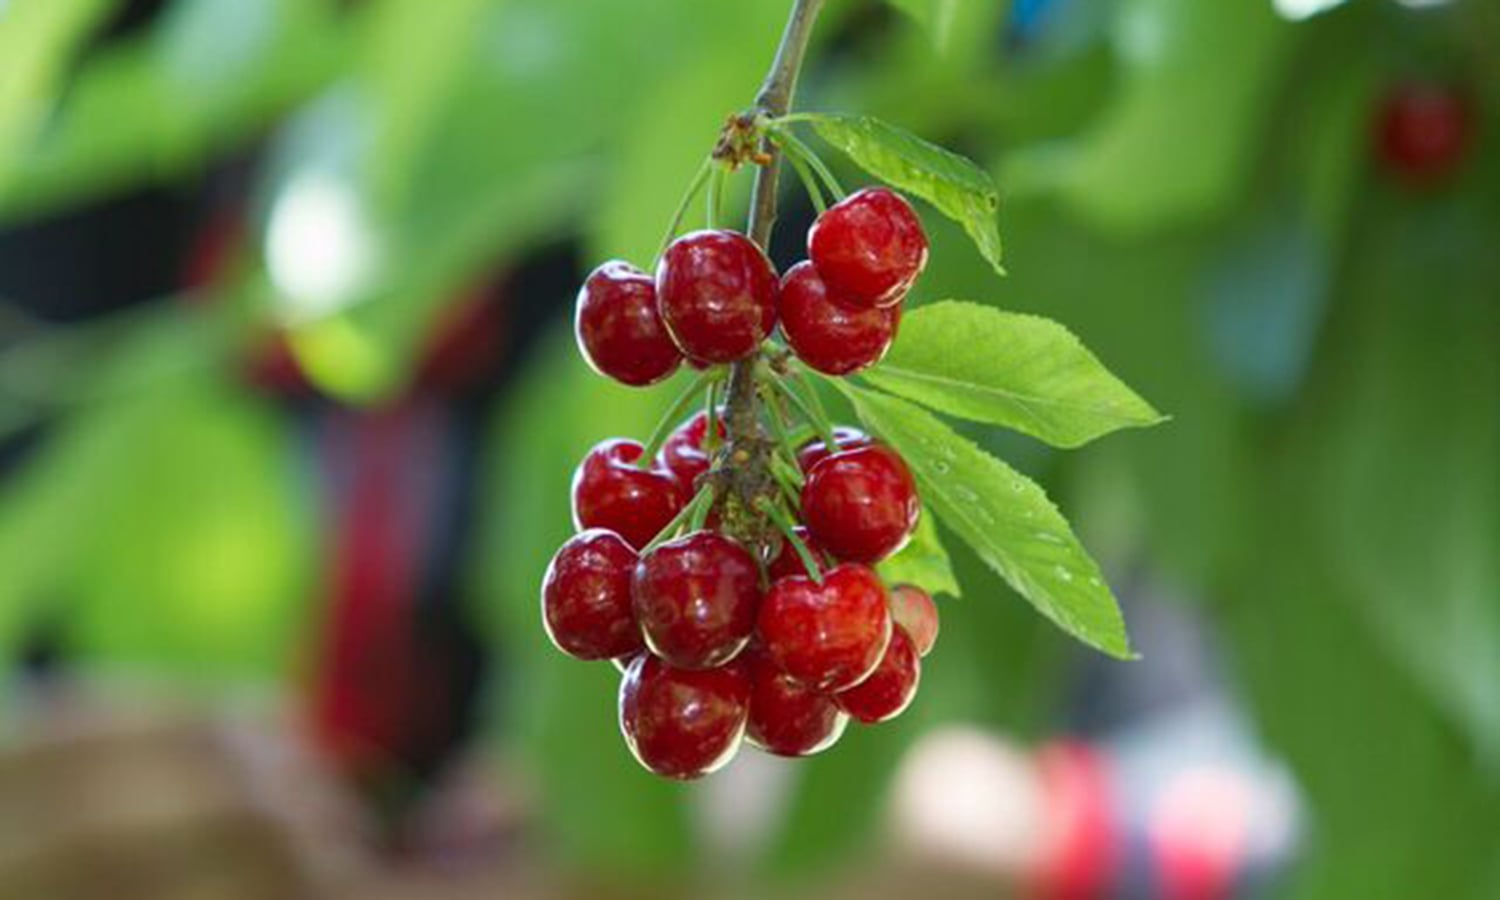 economic corridor a boon for the economy a bane cherries grown in hunza are popular exports to photo by ghulam rasool